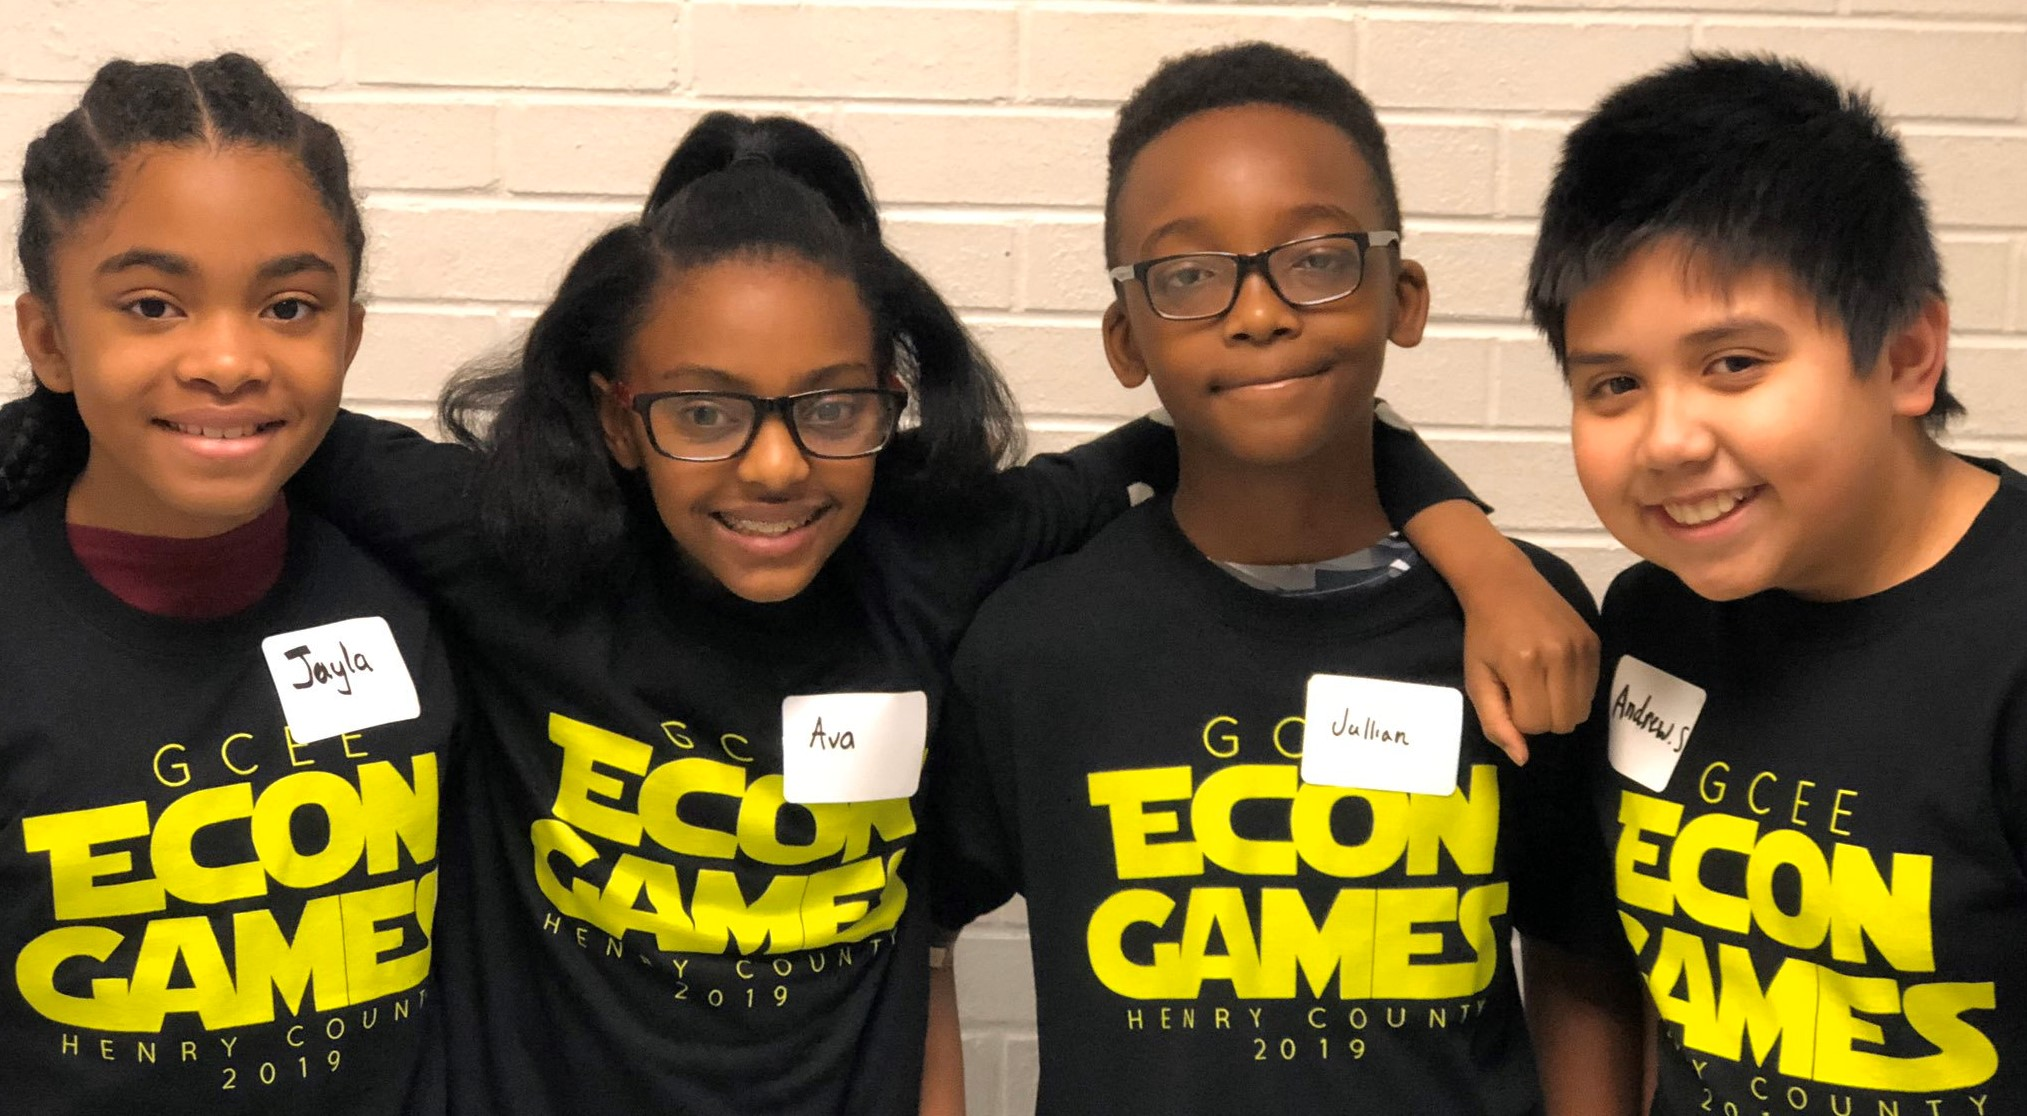 Four Henry County Students in Matching T-Shirts